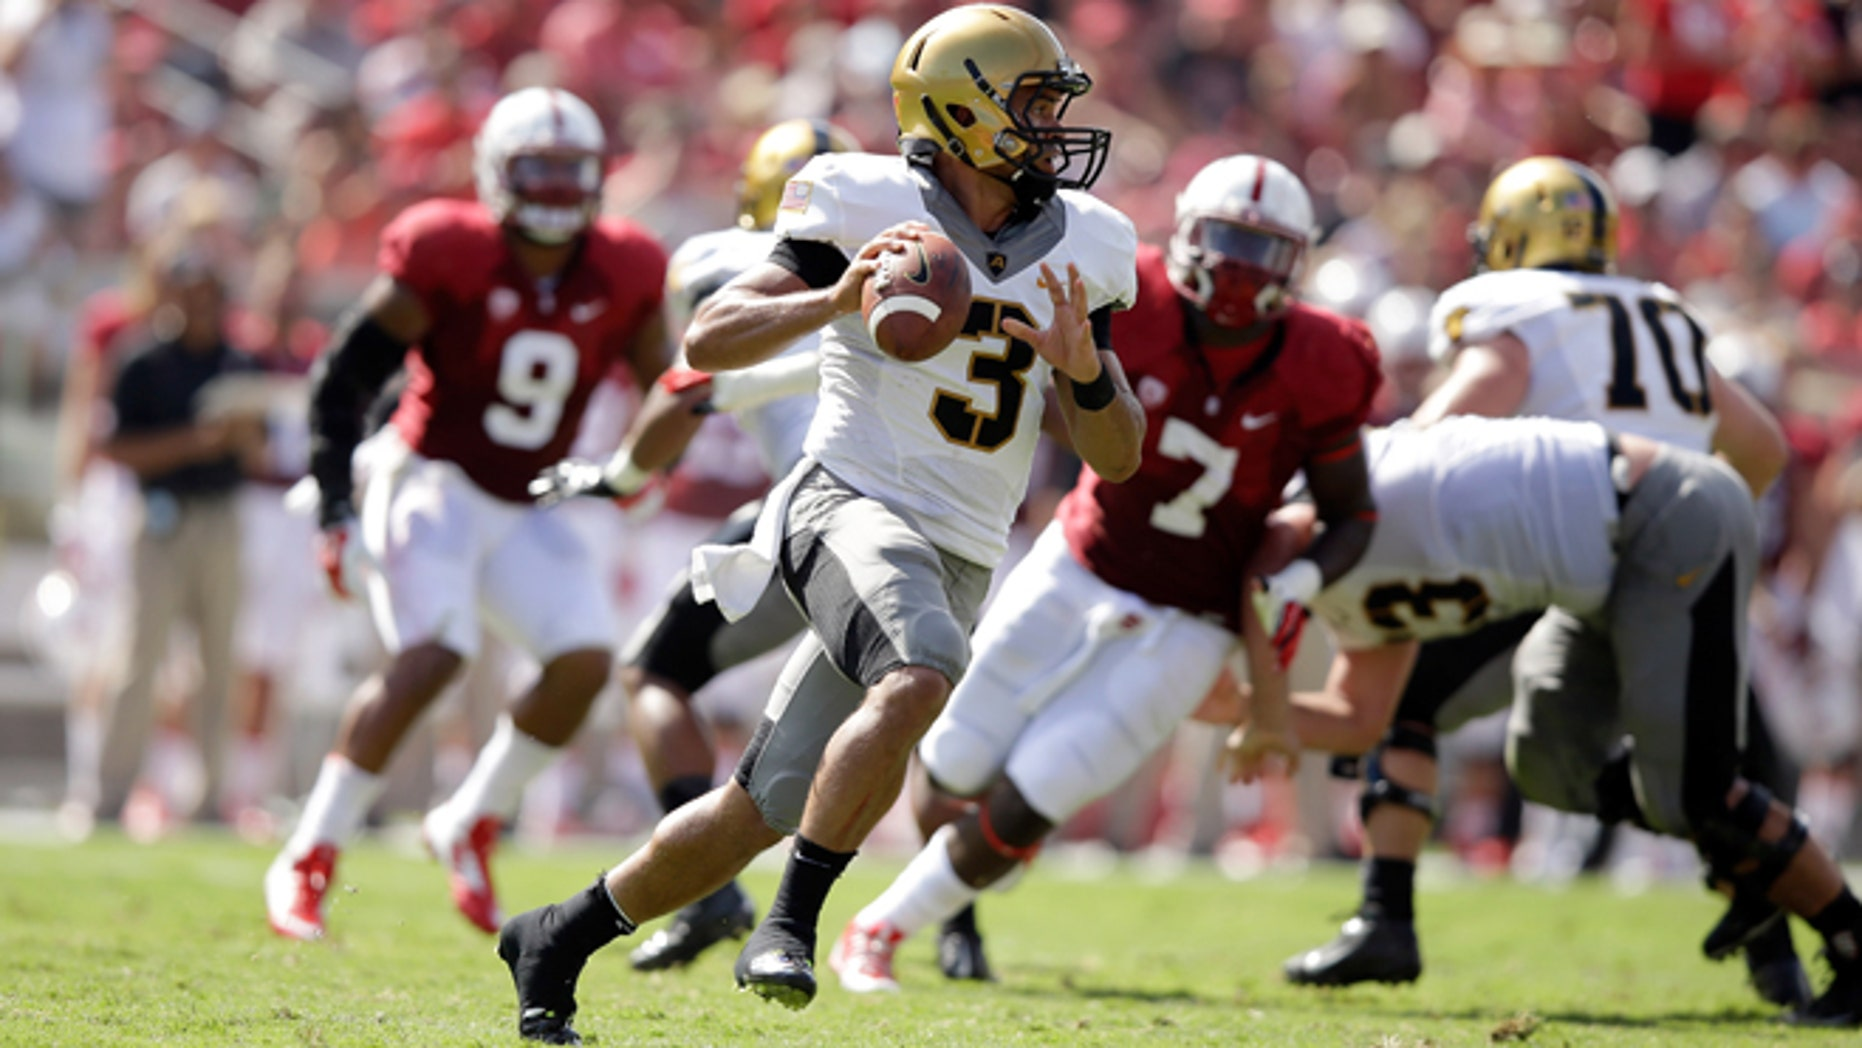 PALO ALTO, CA - SEPTEMBER 13:  Angel Santiago #3 of the Army Black Knights looks to pass the ball against the Stanford Cardinal at Stanford Stadium on September 13, 2014 in Palo Alto, California.  (Photo by Ezra Shaw/Getty Images)